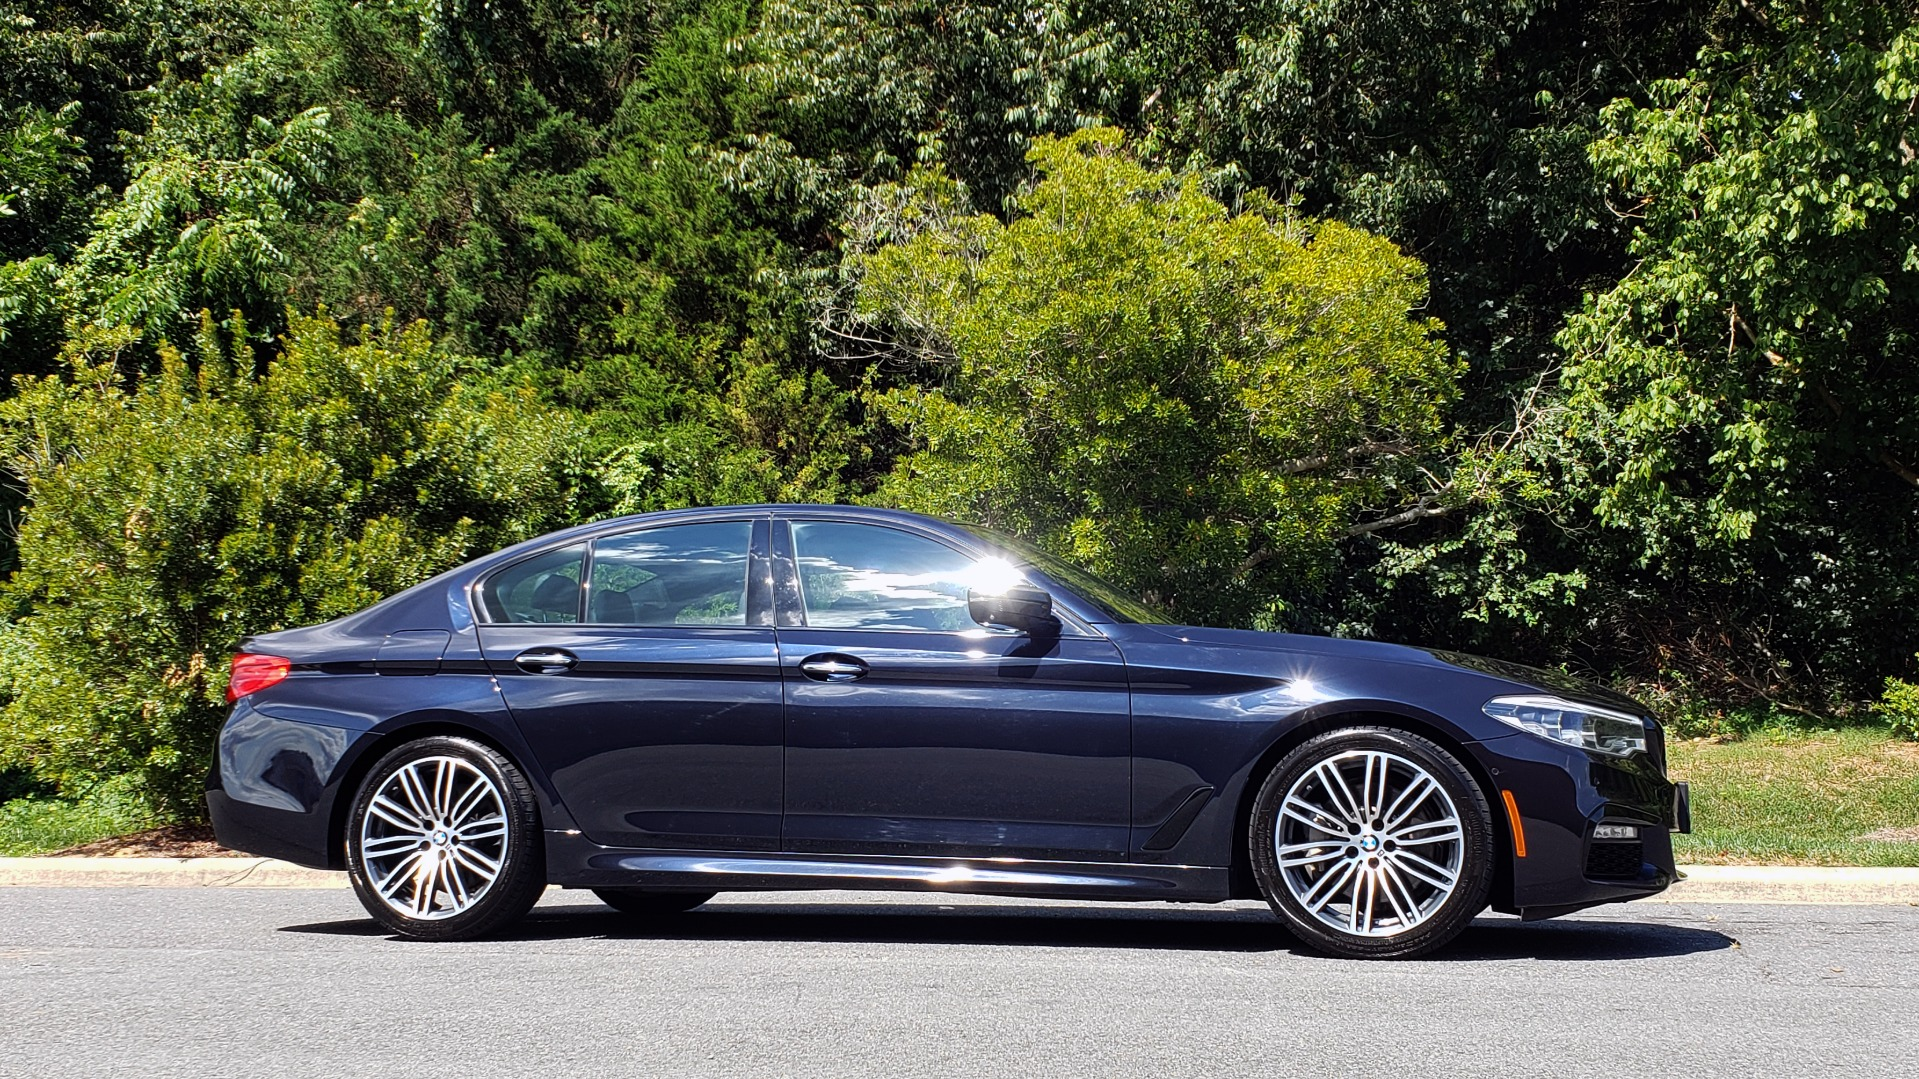 Used 2017 BMW 5 SERIES 540I XDRIVE M-SPORT / PREMIUM / NAV / HUD / SUNROOF / REARVIEW for sale $34,995 at Formula Imports in Charlotte NC 28227 5